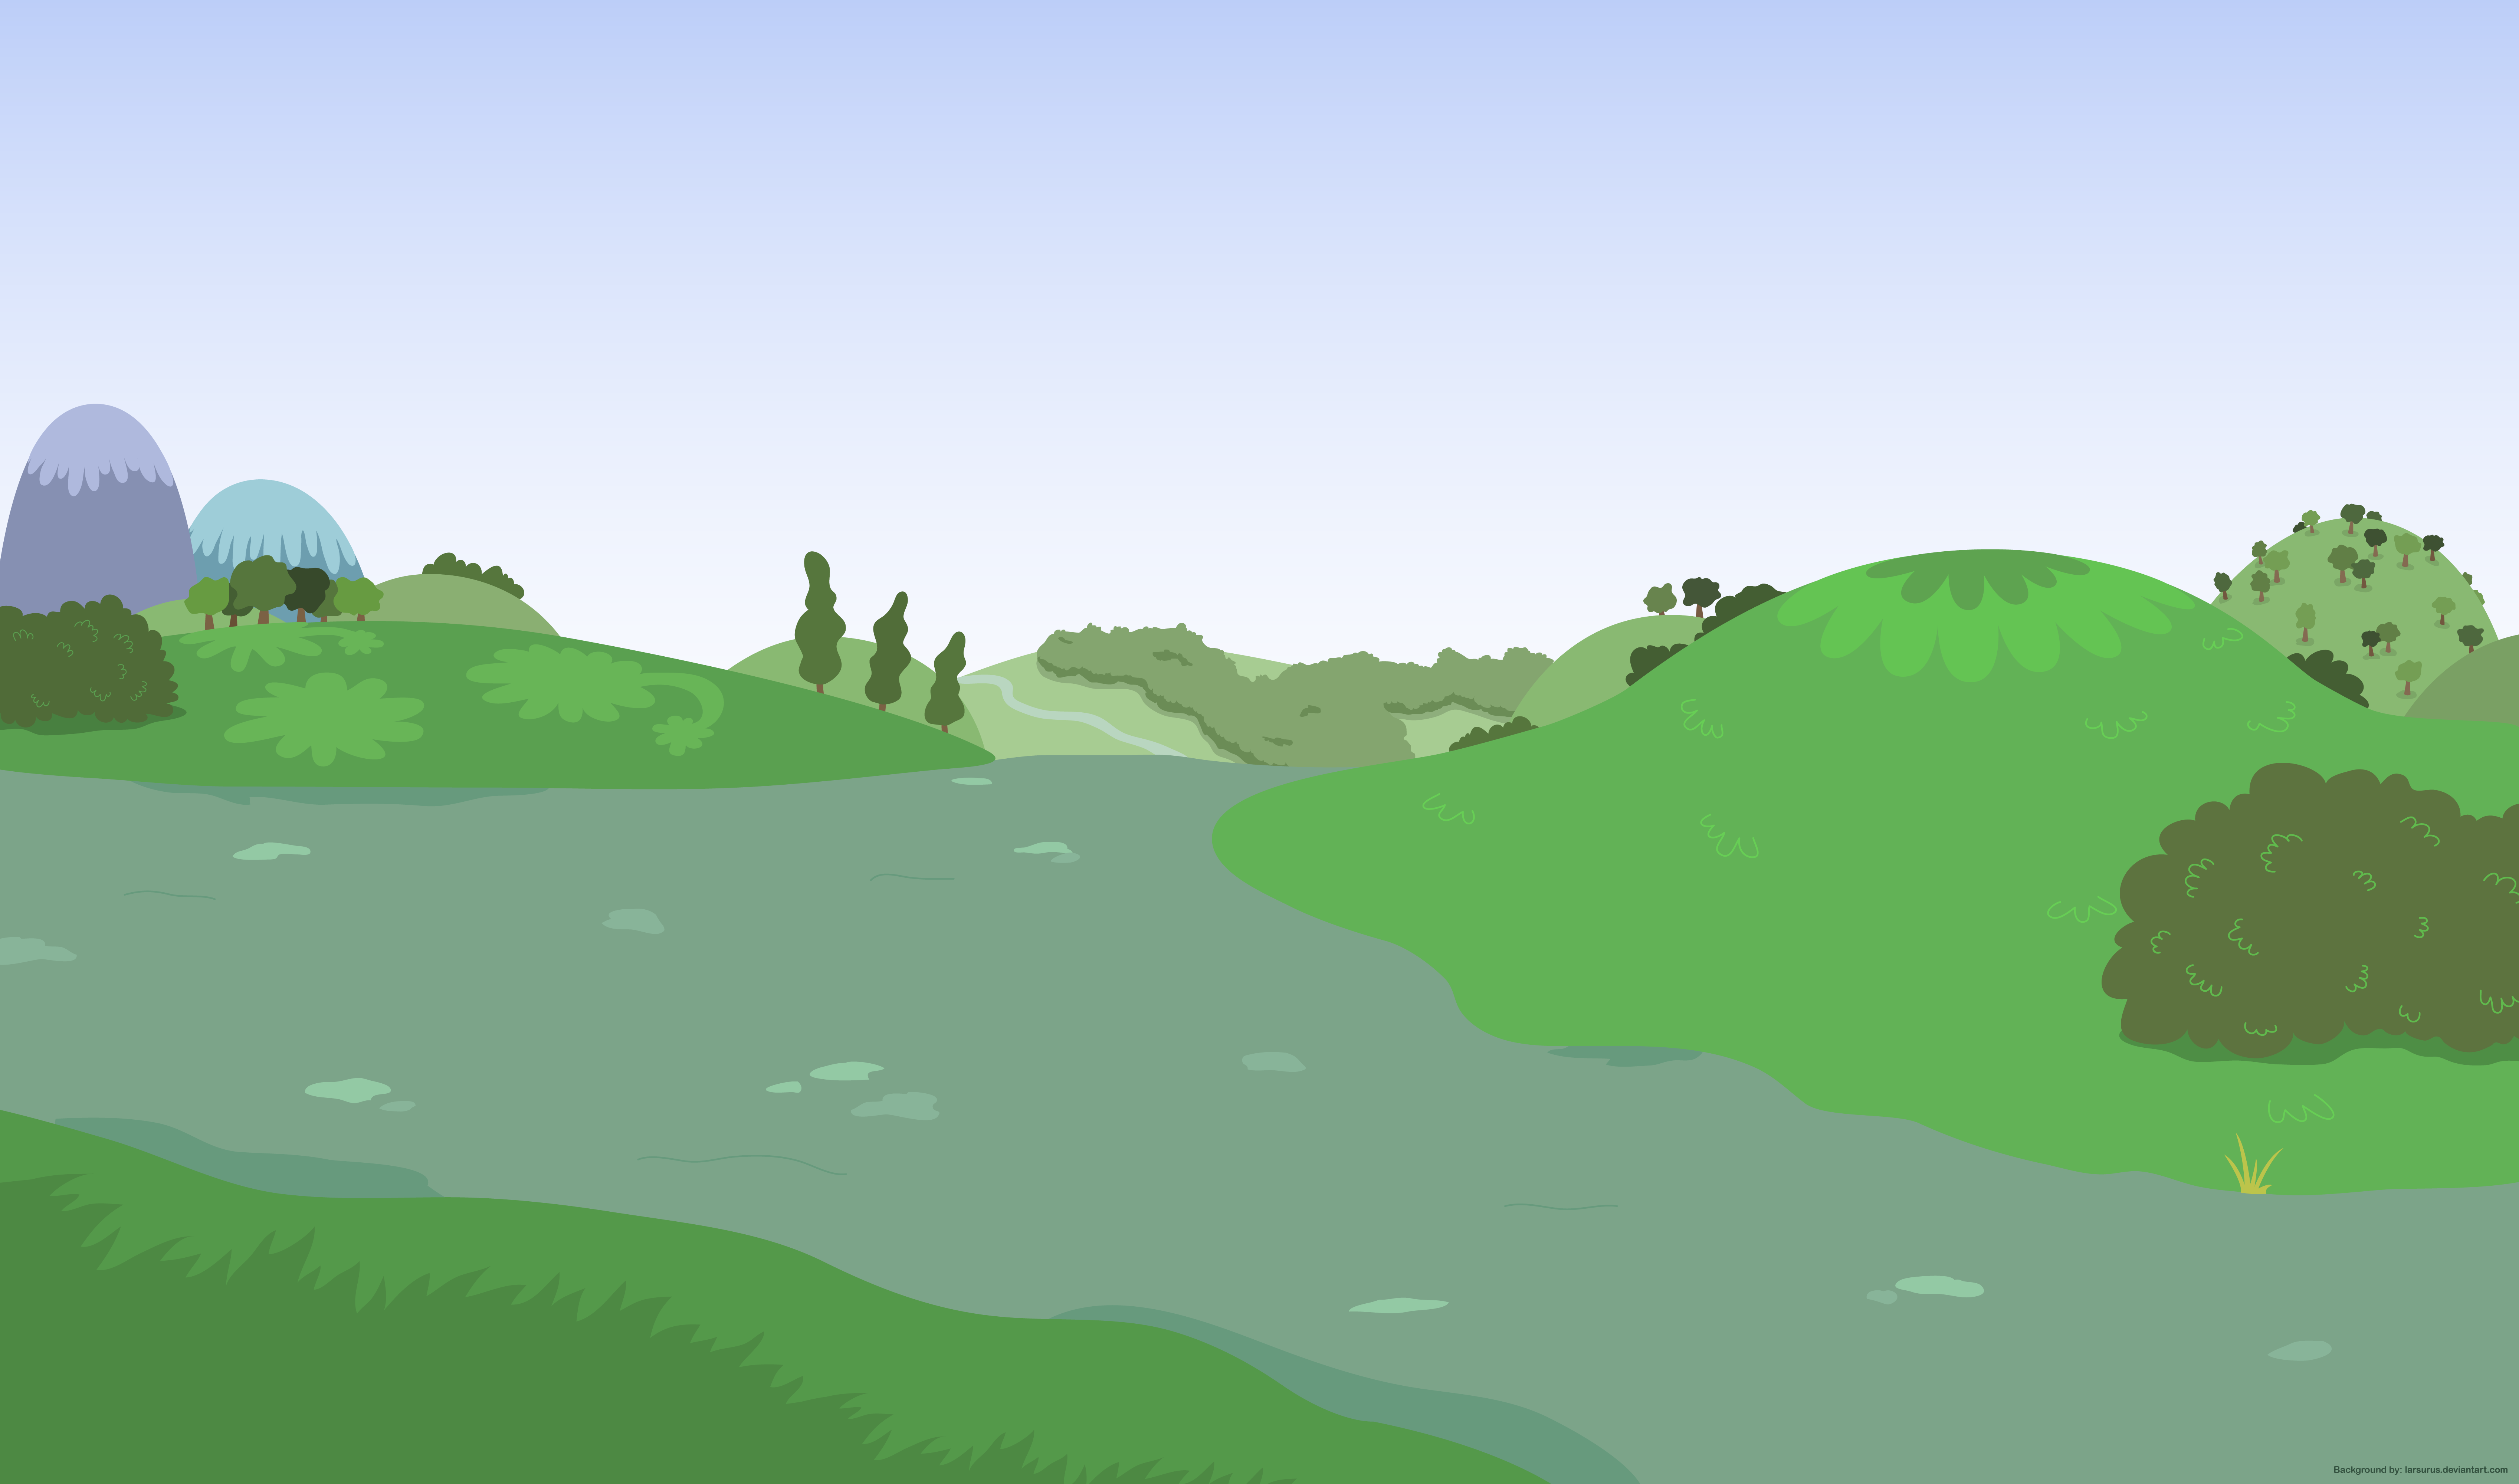 Background without ponies 2 - PNG